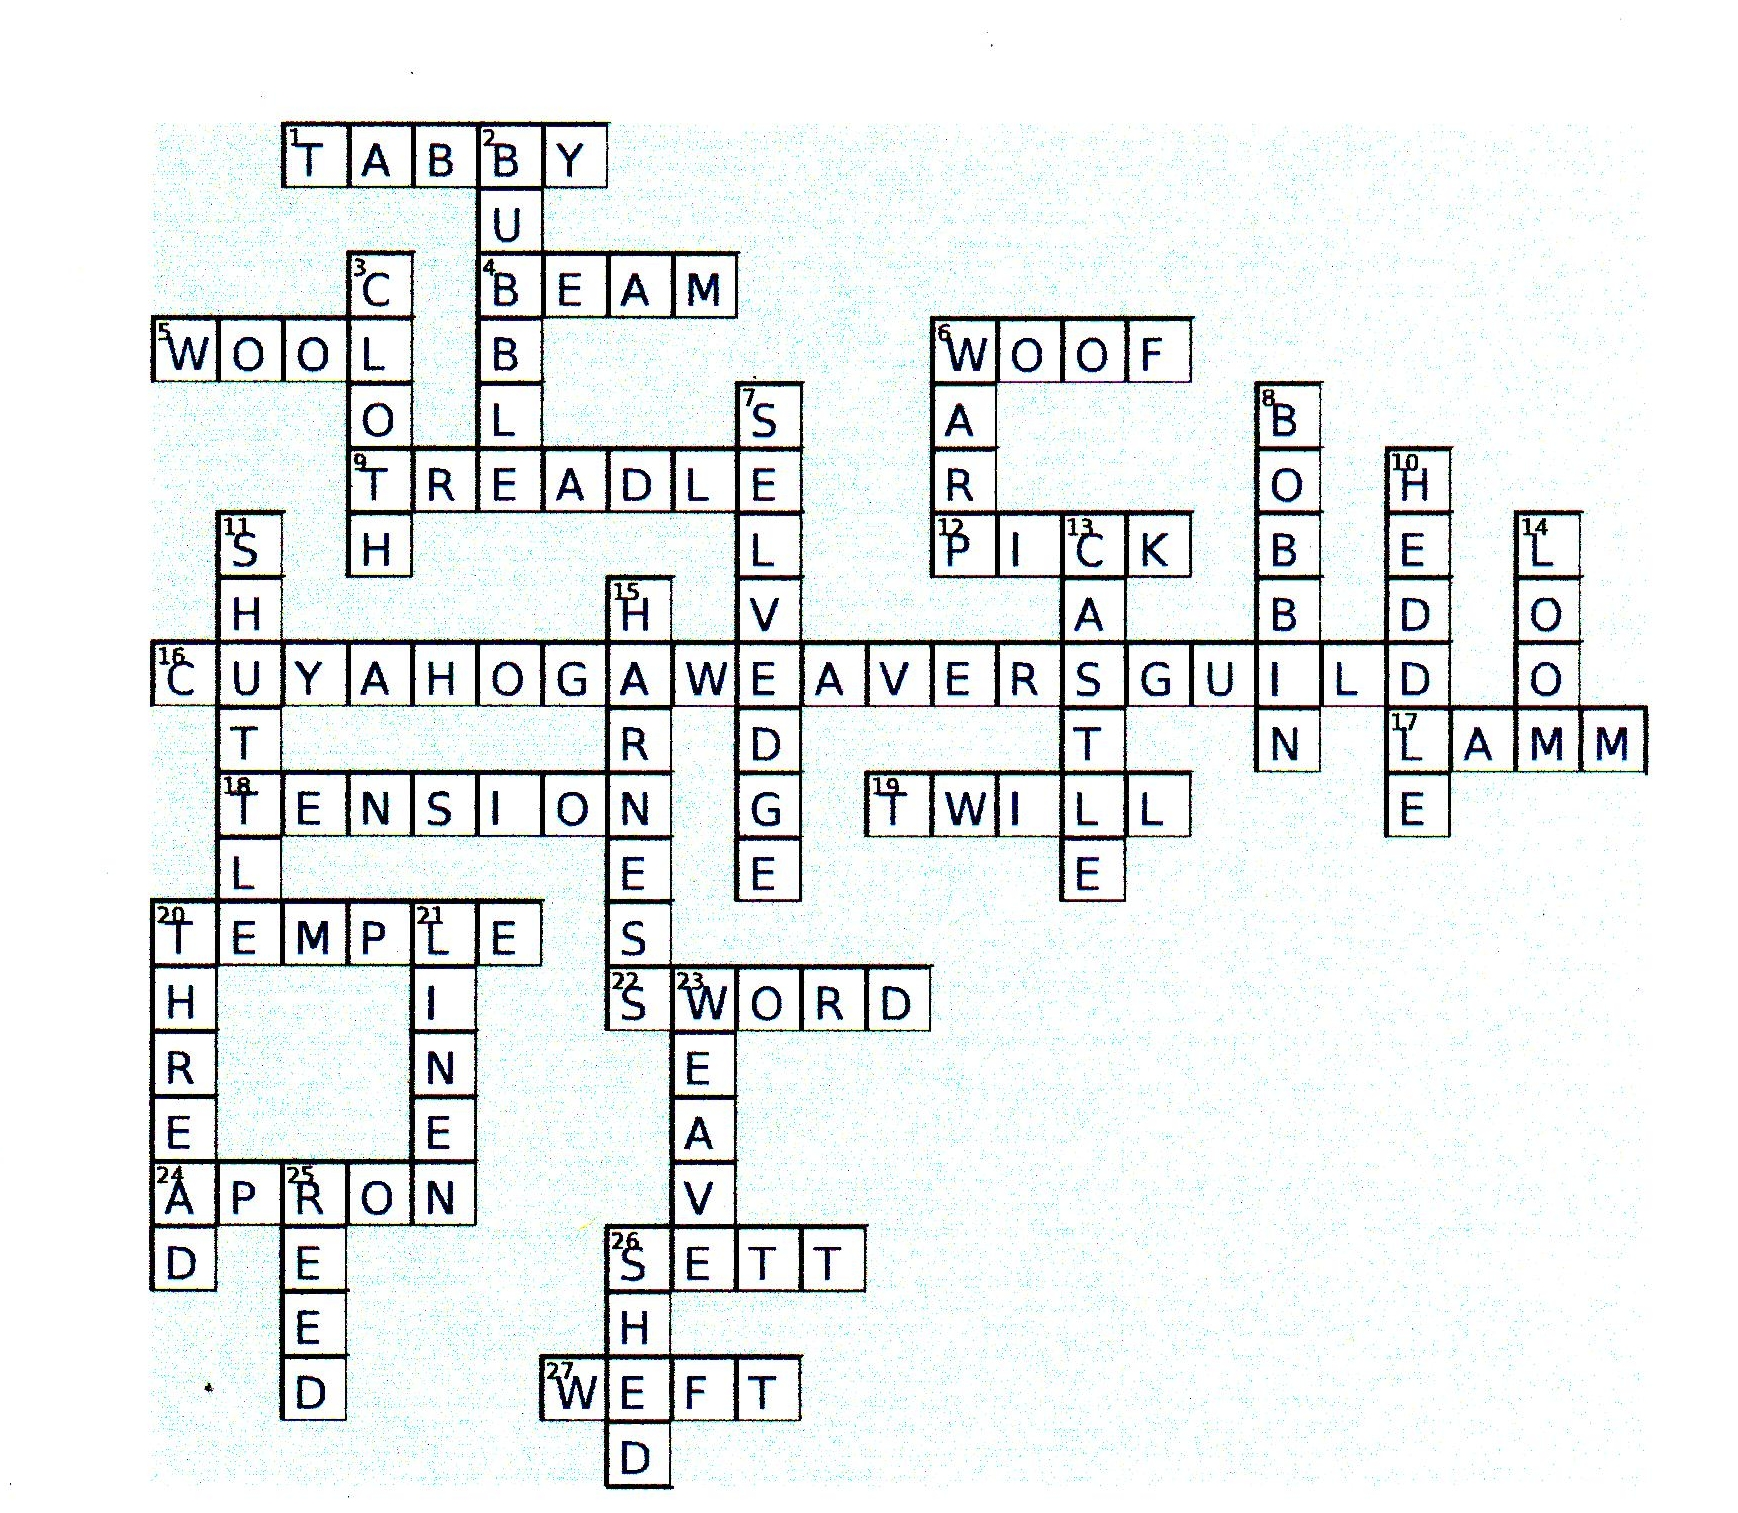 Puzzle Answers